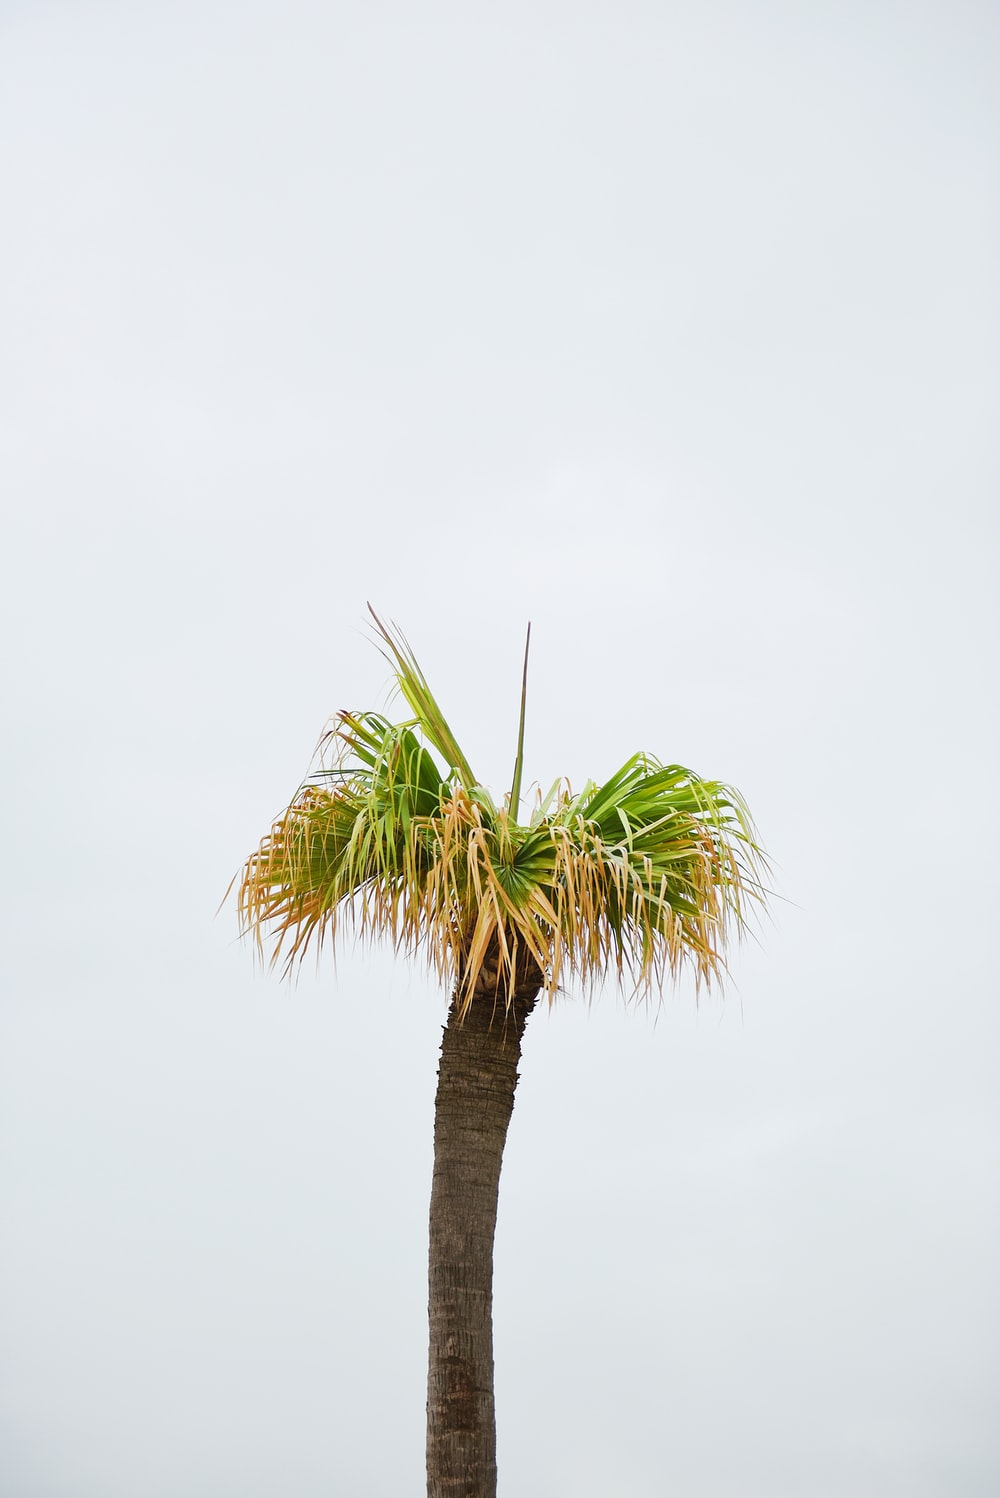 photo of brown and green palm tree